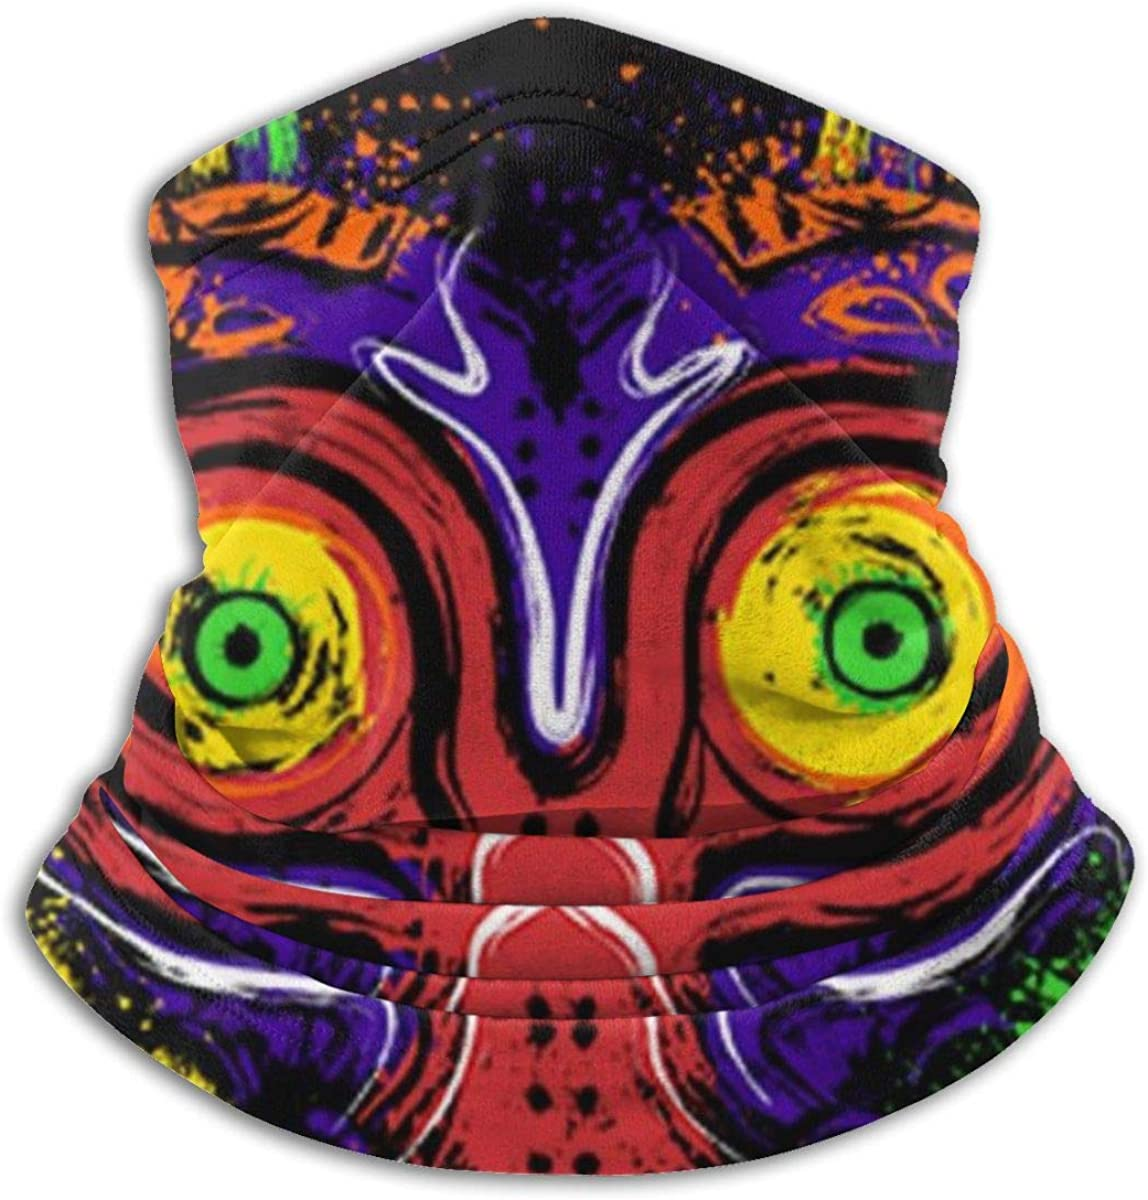 Legend Of Zelda Breath The Max 68% OFF Wild Face White Sheikah B Eye Mask Limited Special Price